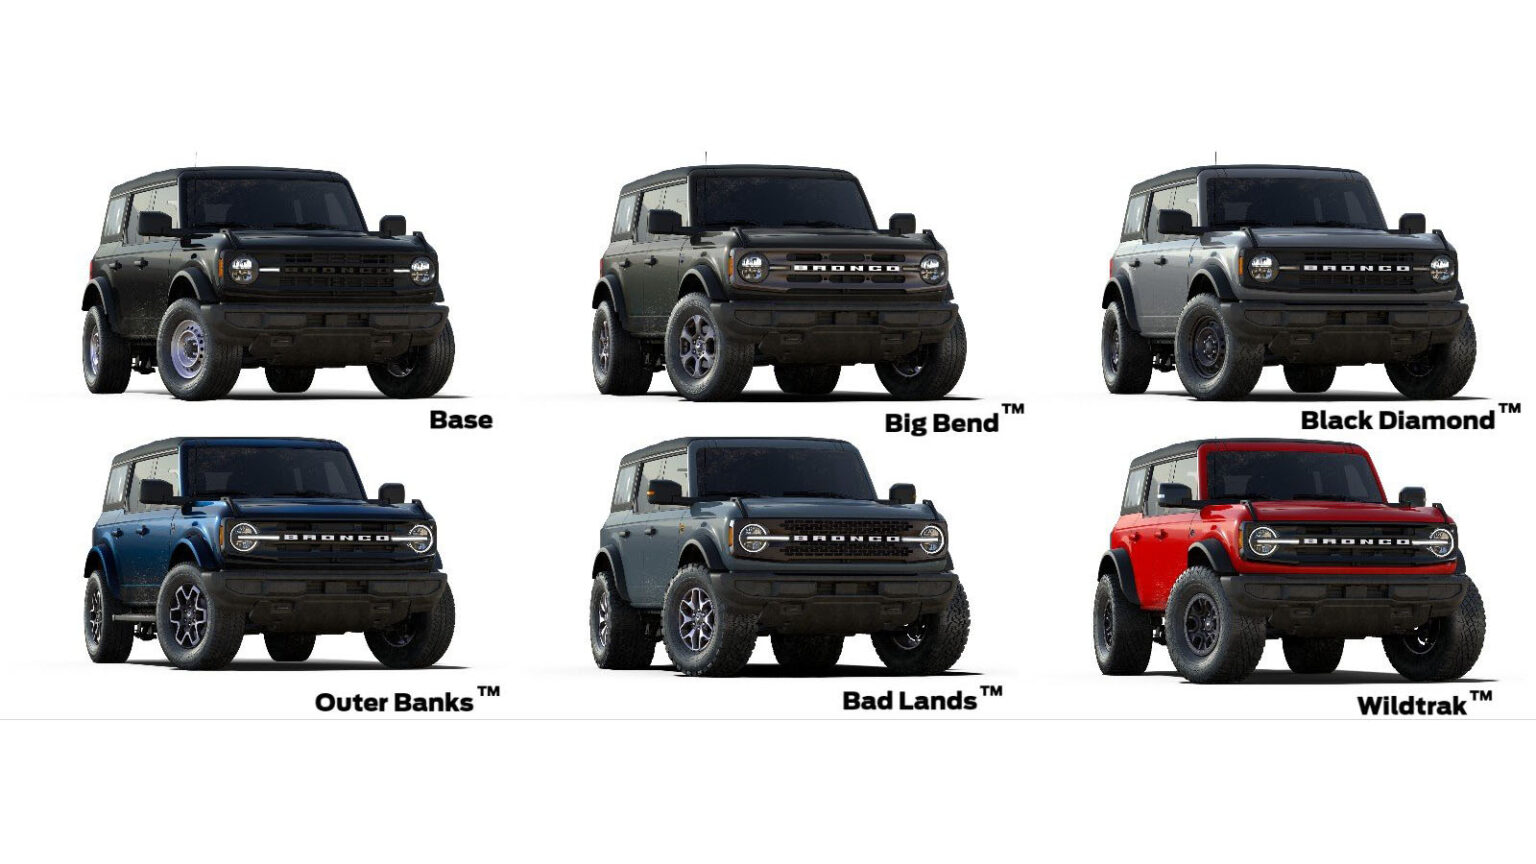 Ford Update Bronco Build Price Coming In September With Ordering In December Bronco6g 2021 Ford Bronco Forum News Blog Owners Community